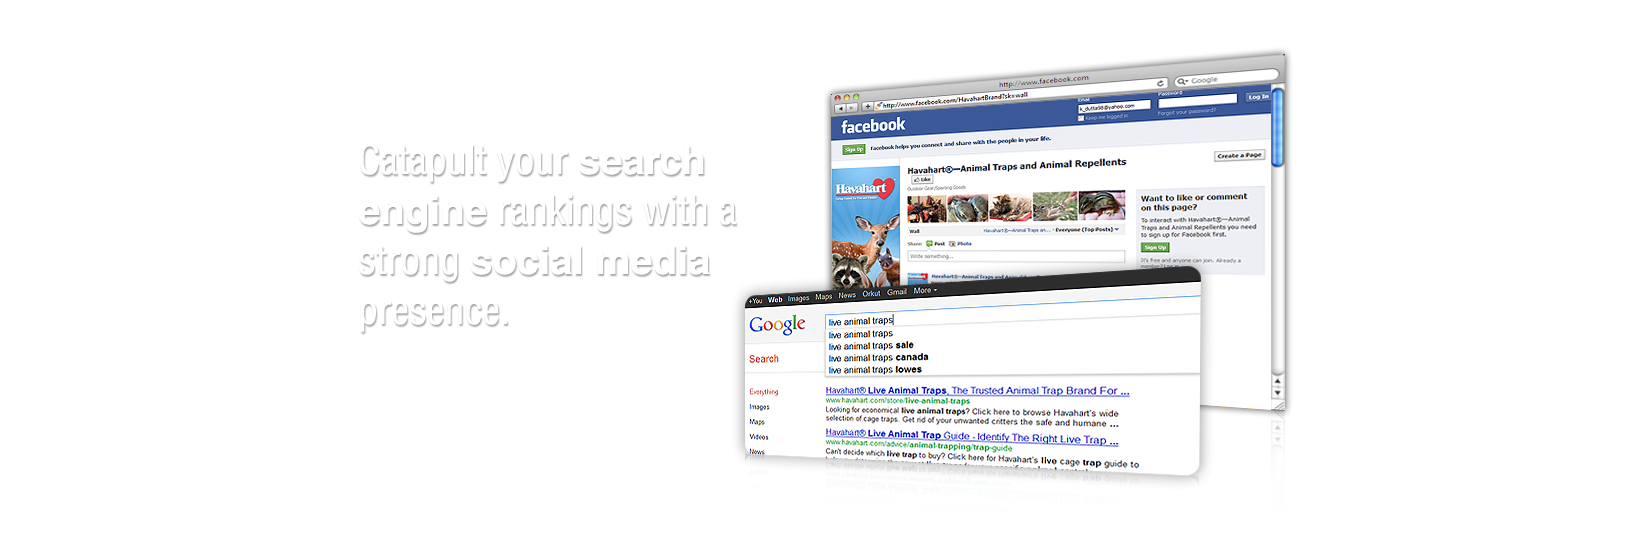 Catapult your Search Engine Rankings with a strong Social Media Presence.